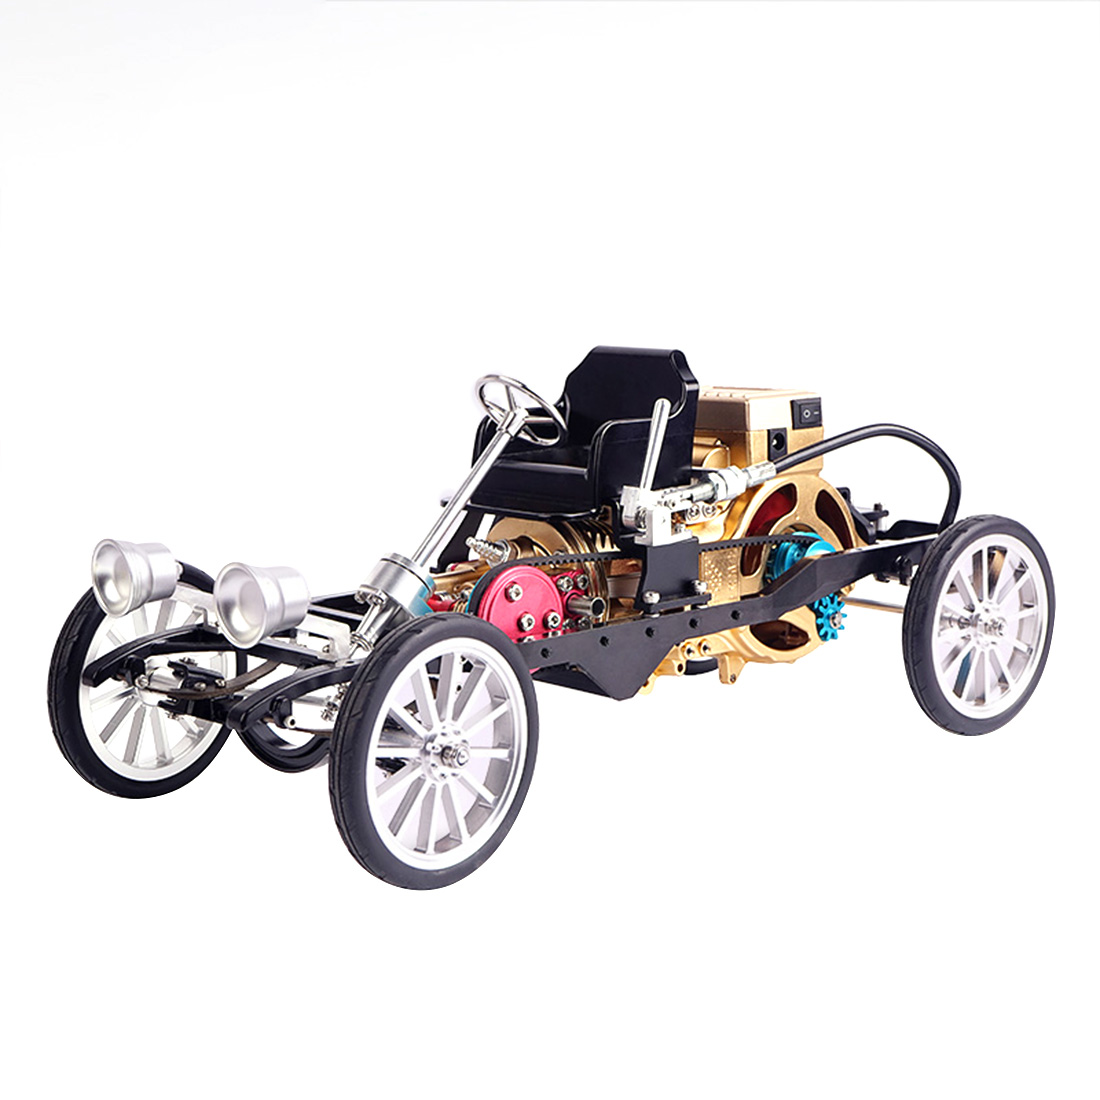 Teching All-aluminum Single-cylinder Engine Car Model High Challenge Simulation Mini Car Assembly Model 2019 Adult Gift